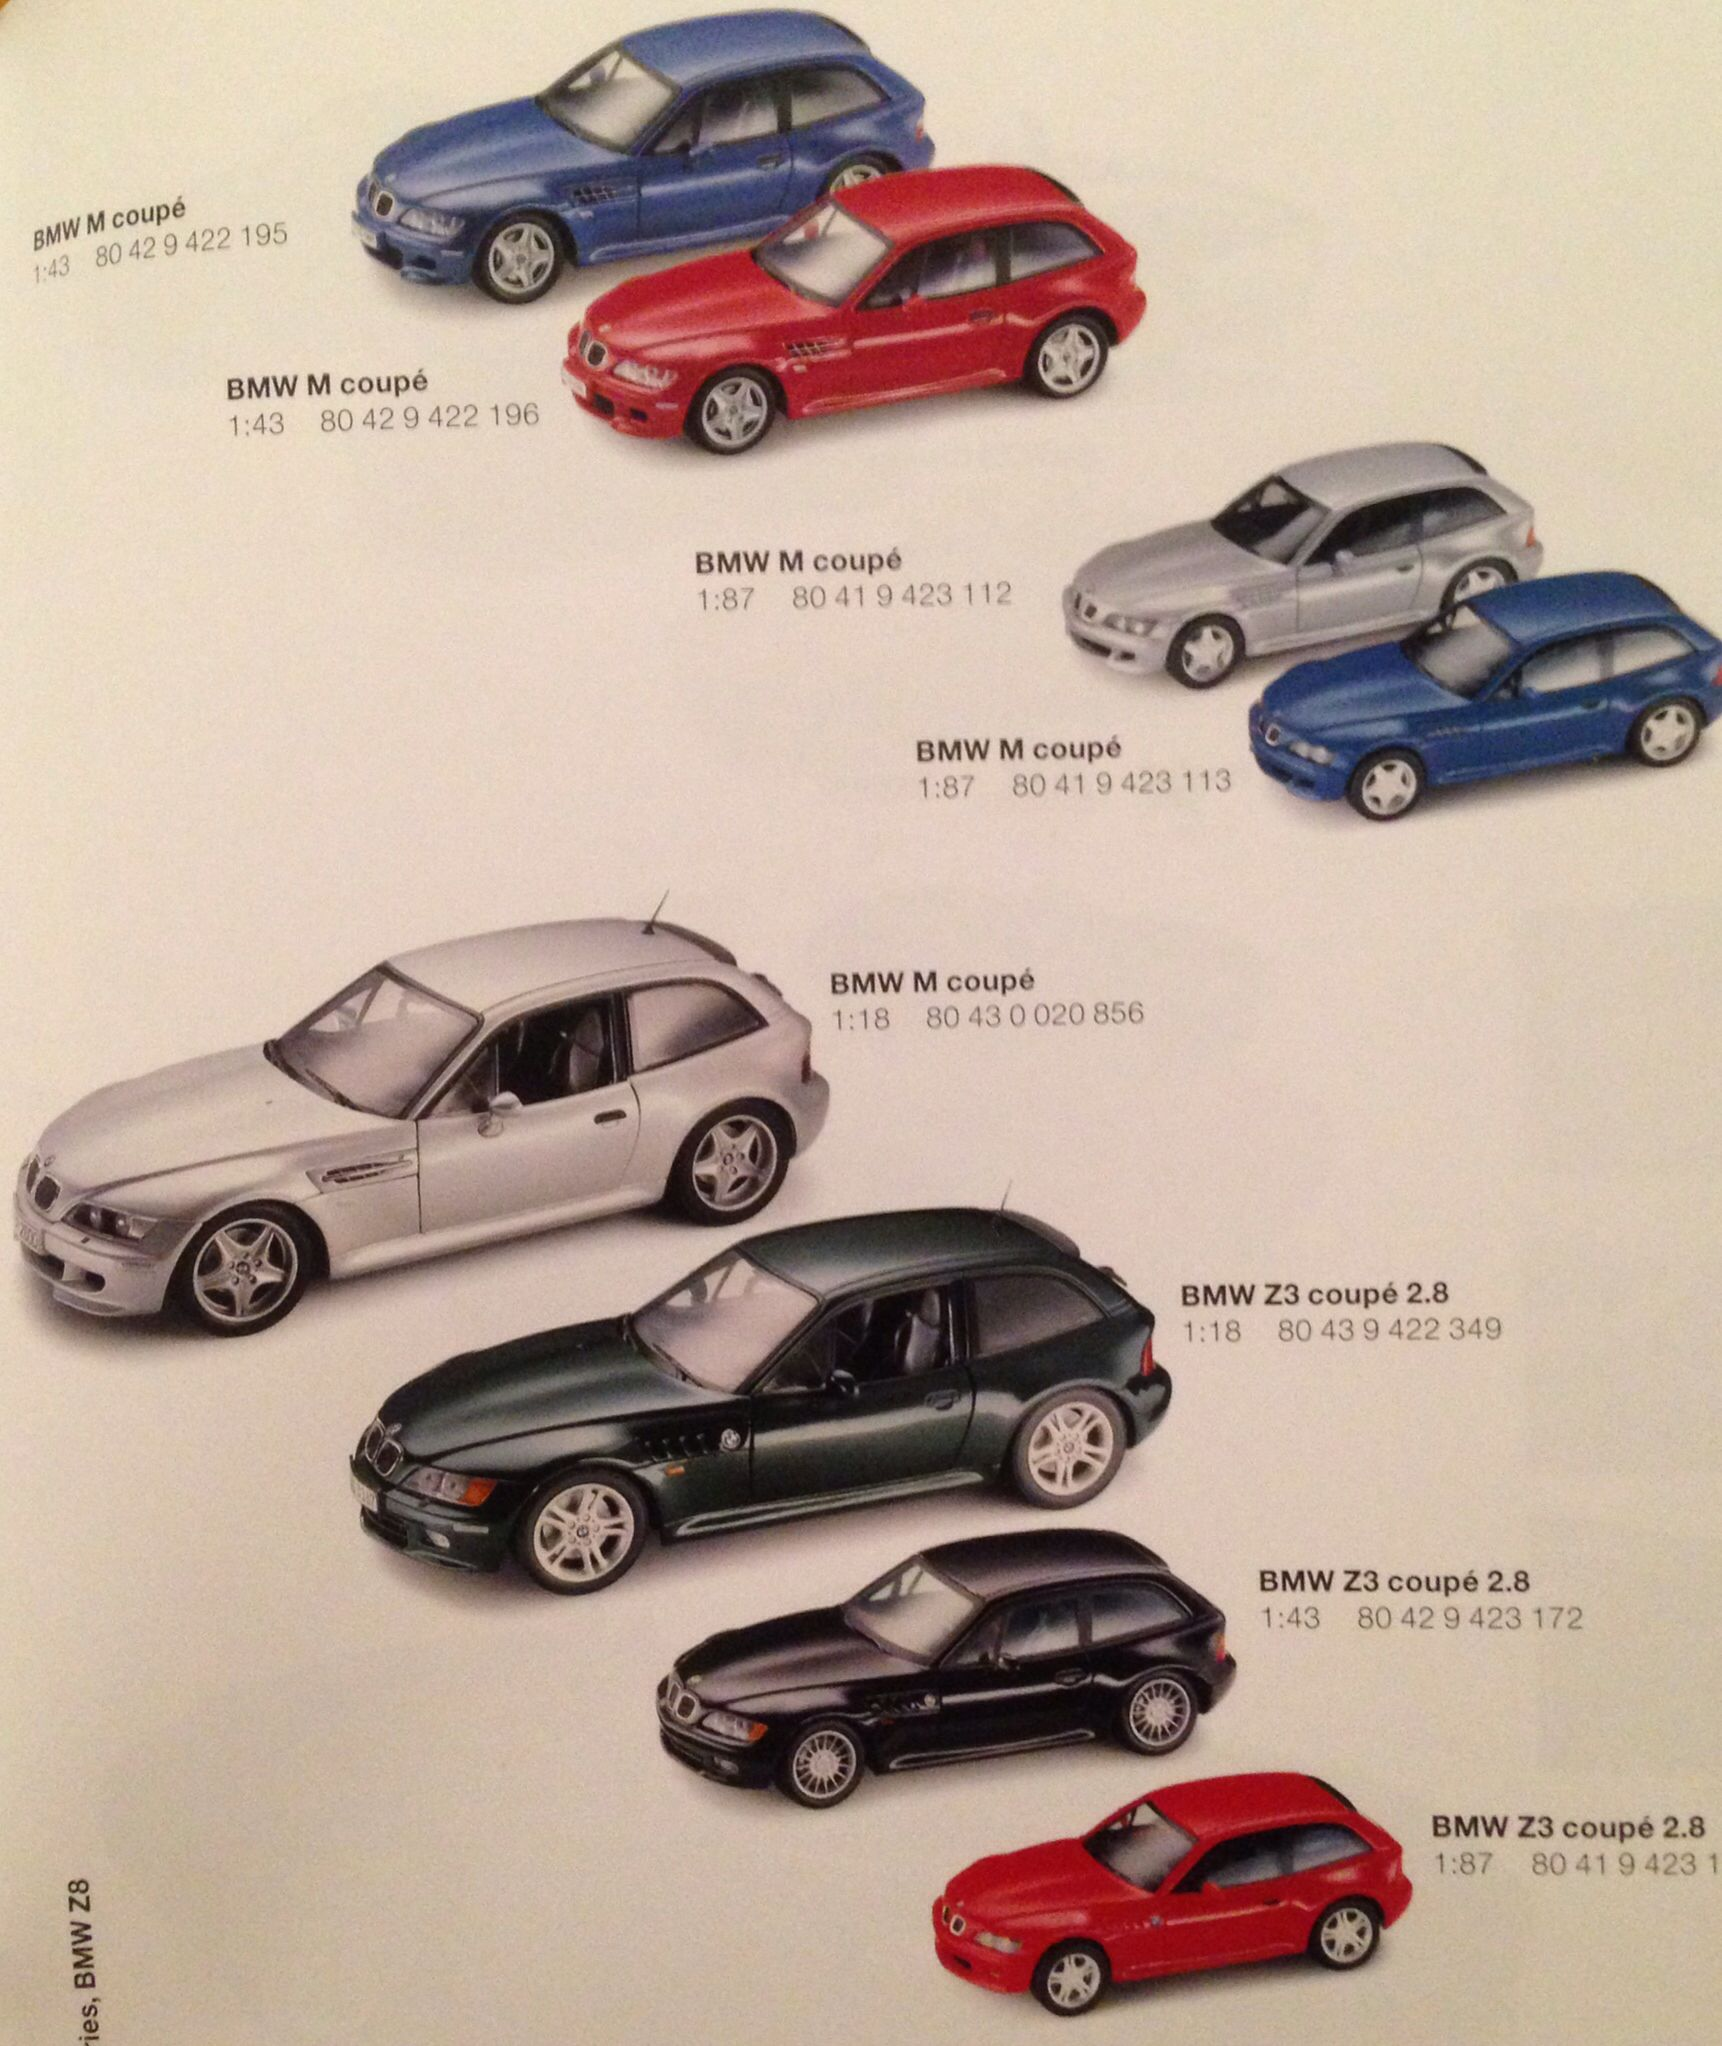 2001 Bmw Collectors Catalog Miniatures Page Depicting All Diecast Models Of The M Coupe Bmw Z3 Bmw Auto